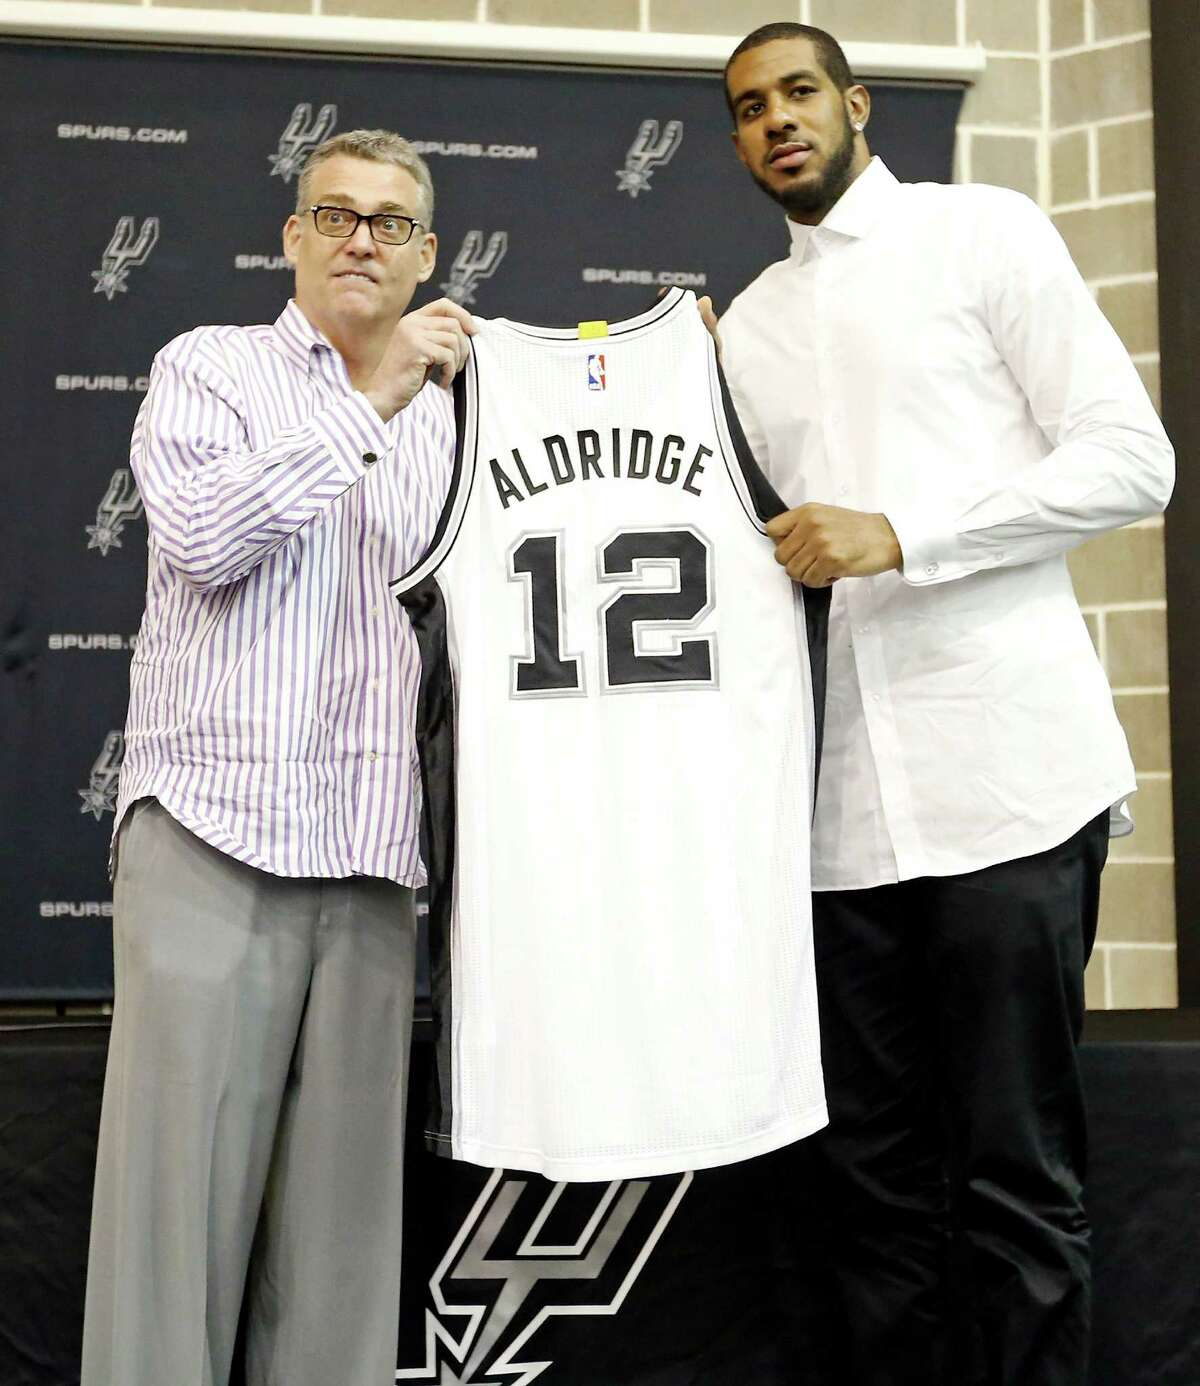 San Antonio Spurs general manager R.C. Buford (left), and LaMarcus Aldridge pose for photos with Aldridge's jersey during a press conference at the Spurs practice facility Friday July 10, 2015 where he was officially introduced.